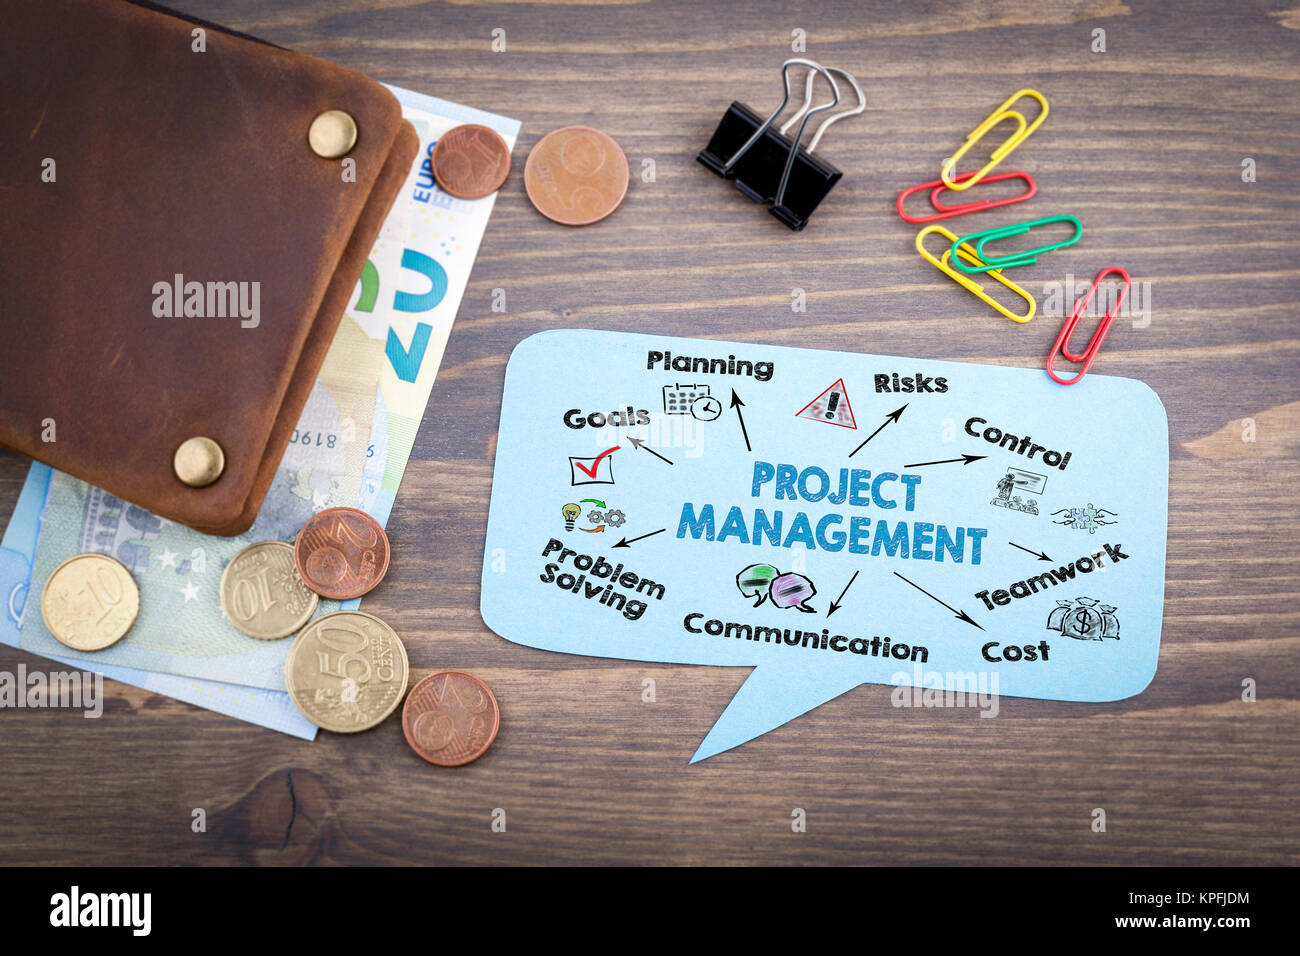 project management concept. Chart with keywords and icons - Stock Image